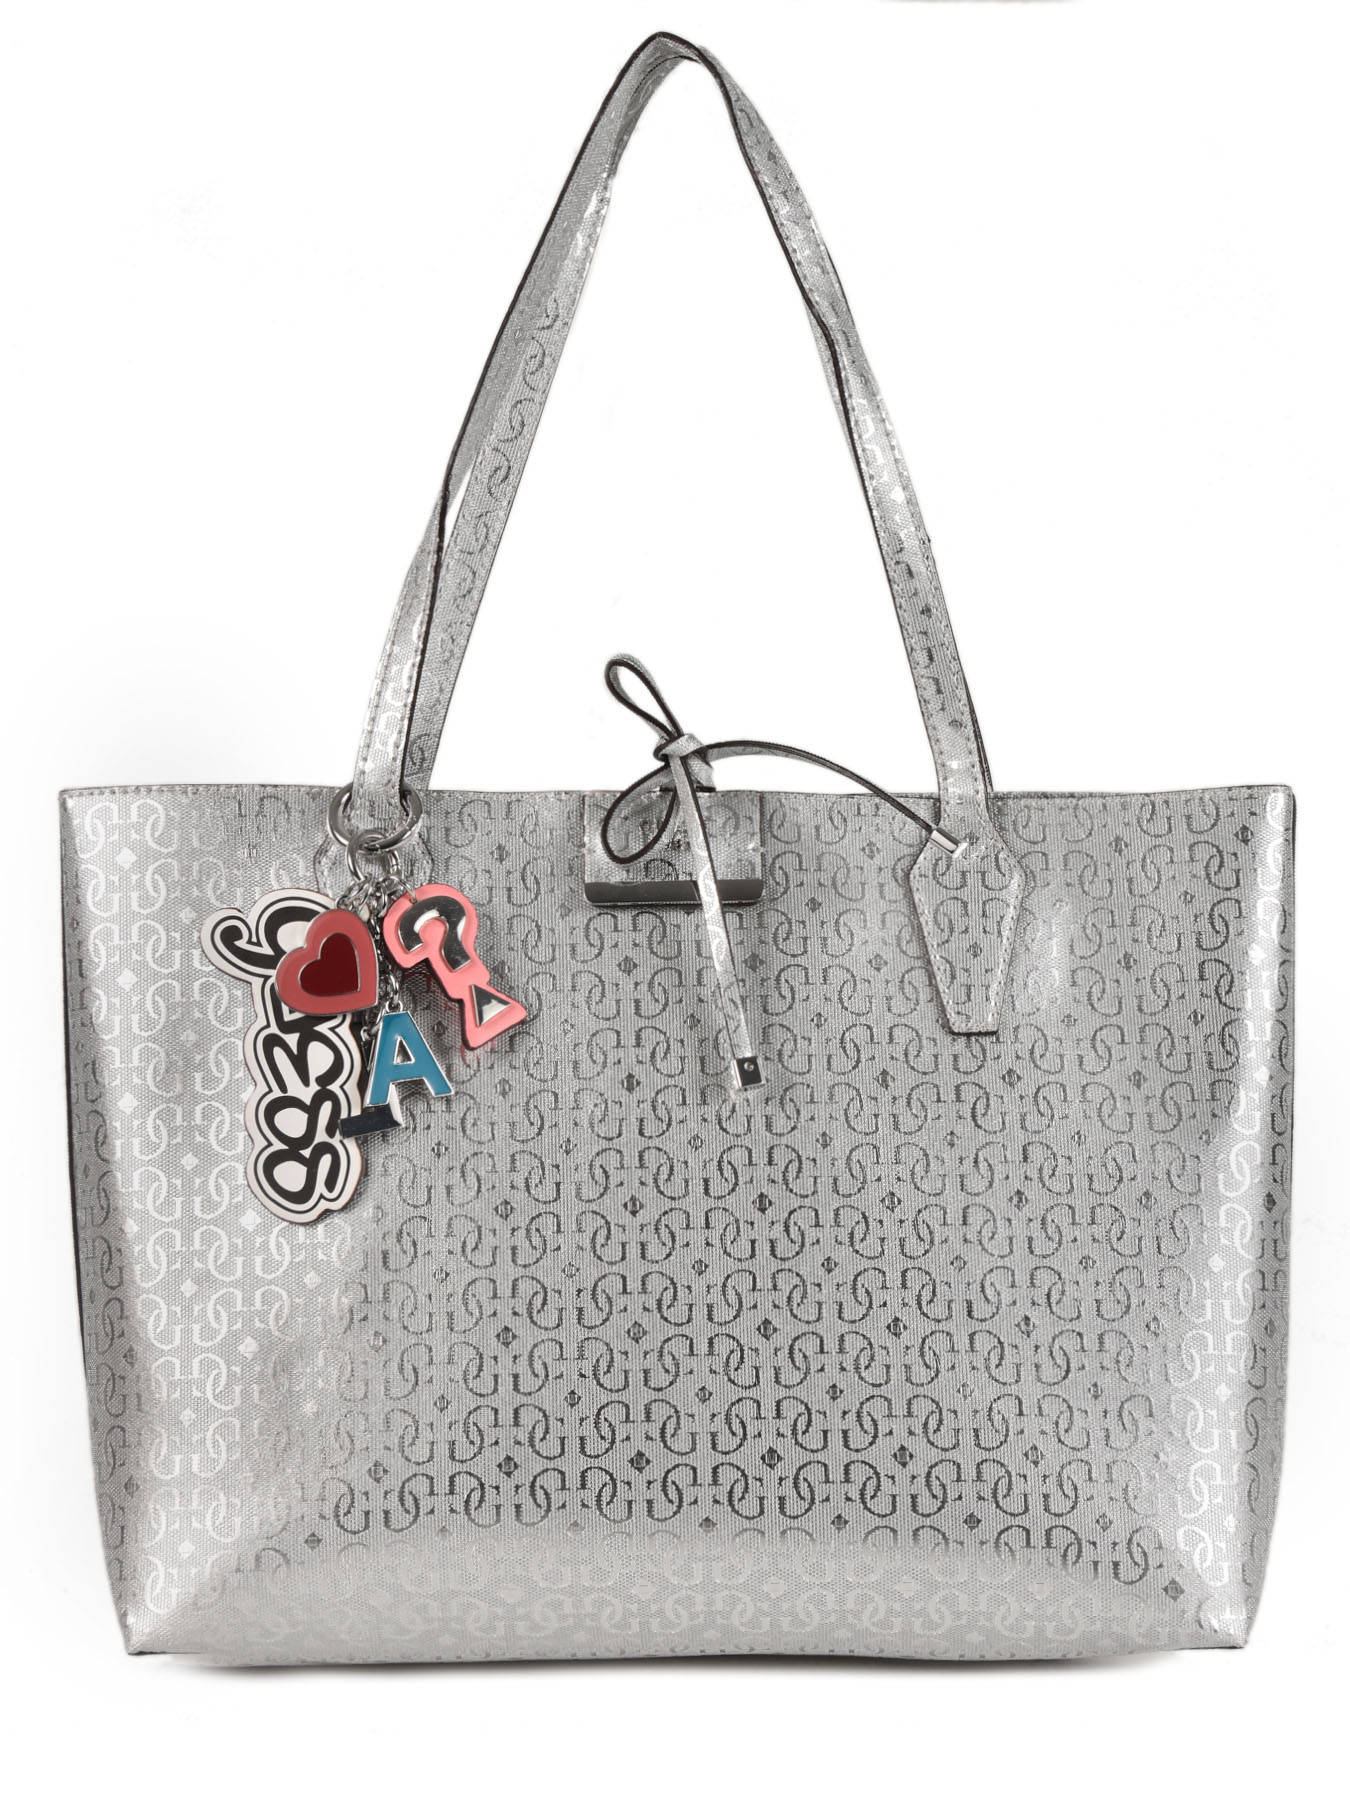 ... Shoulder Bag Tabbi Guess Silver tabbi MY718115 ... cc2d3788beade